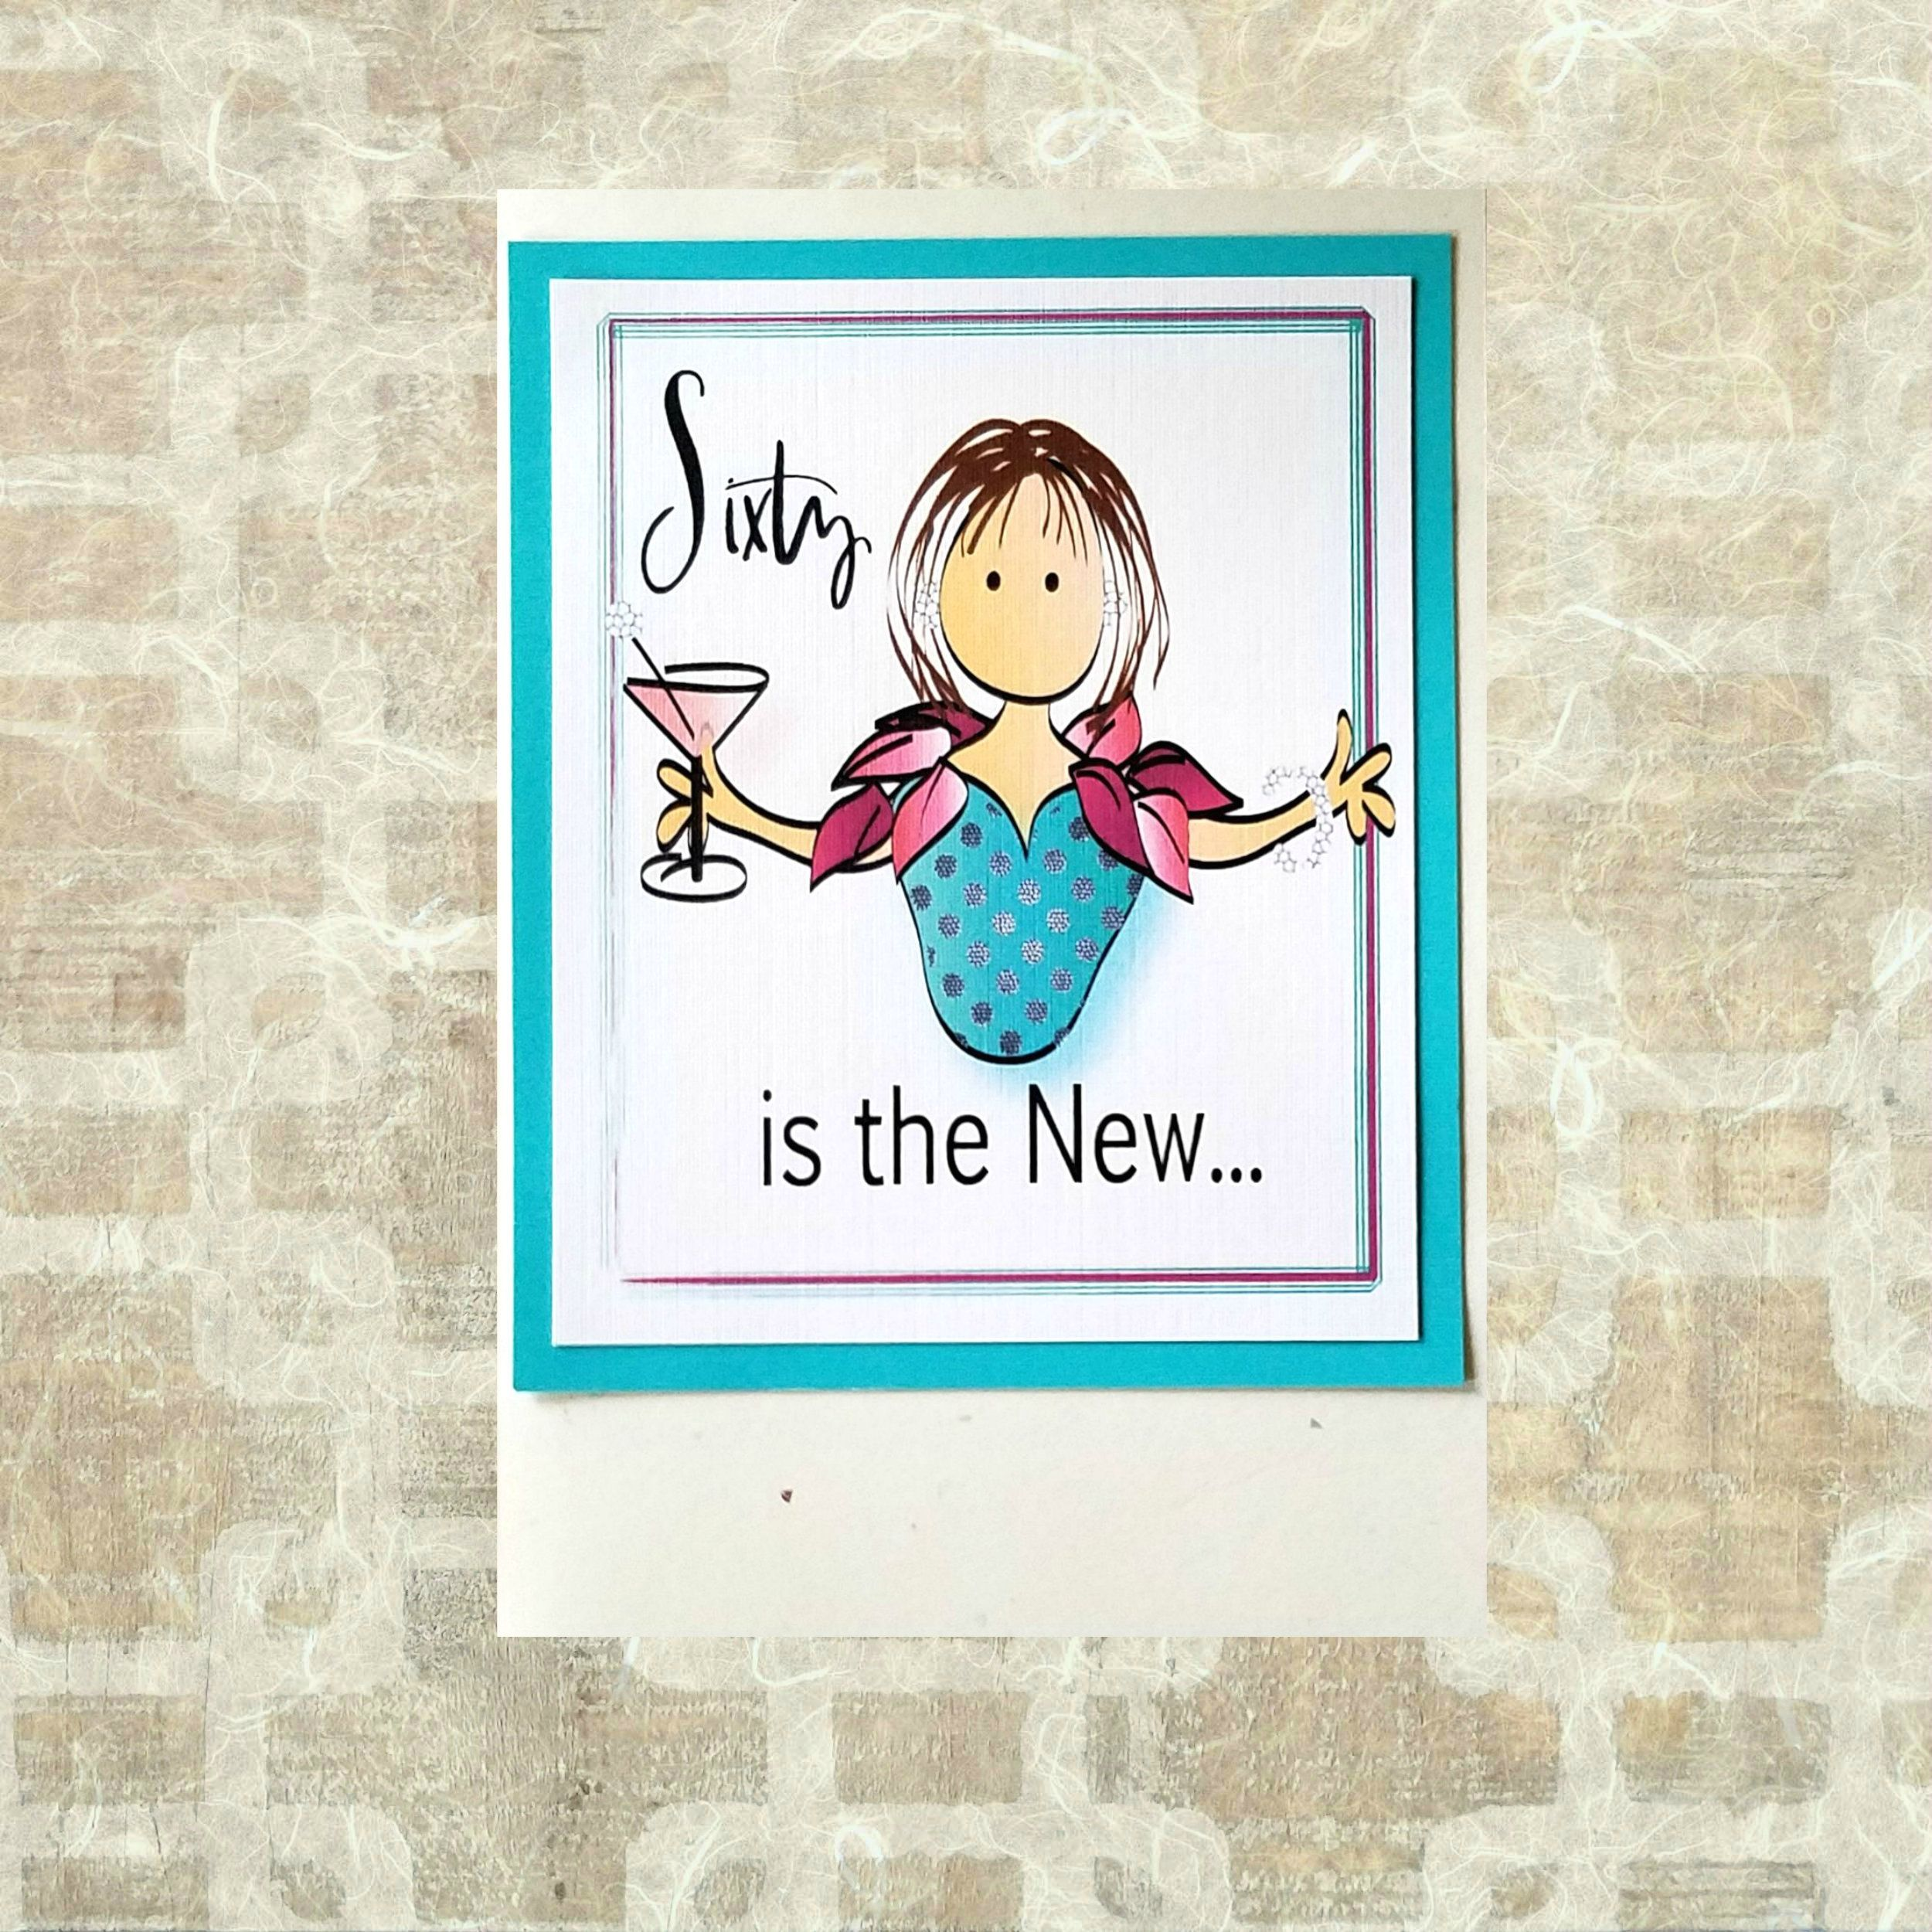 60th birthday card for her funny birthday card with